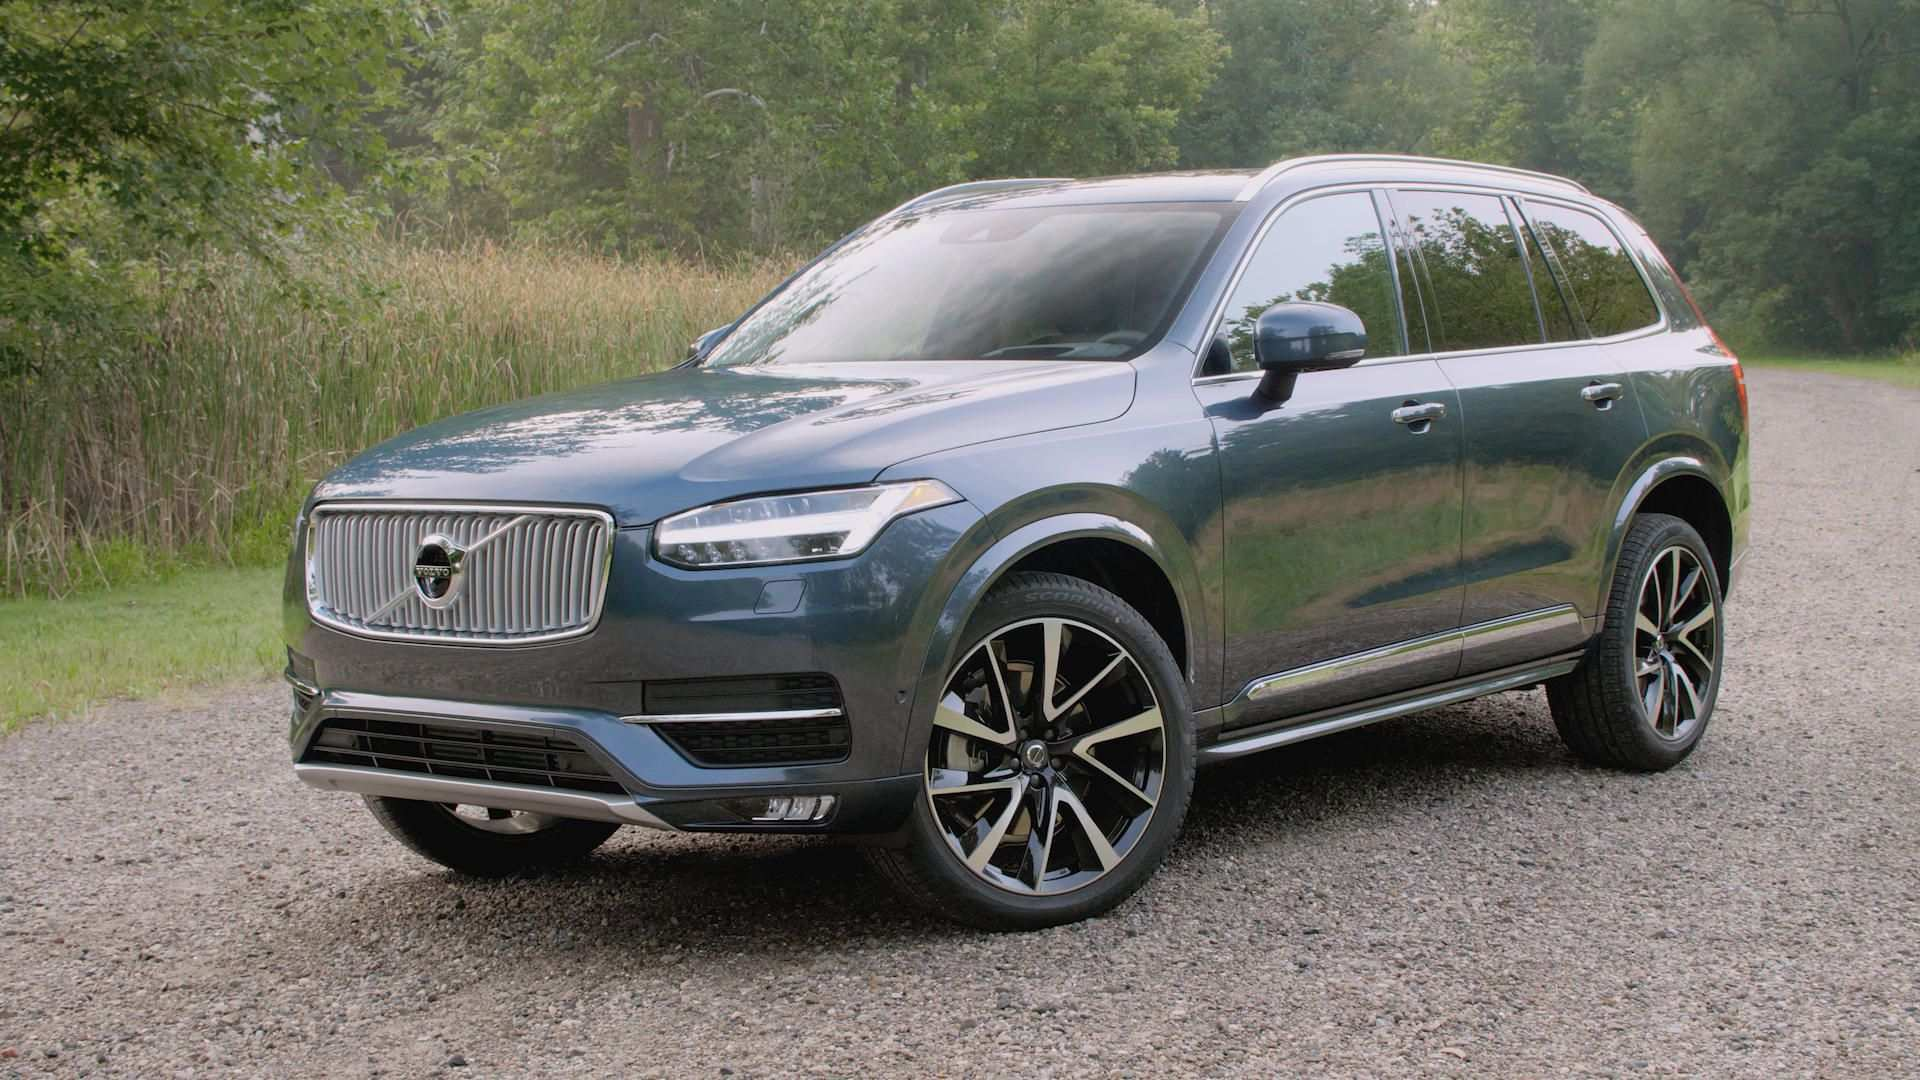 87 New The Volvo Xc90 2019 New Features Release Pictures by The Volvo Xc90 2019 New Features Release